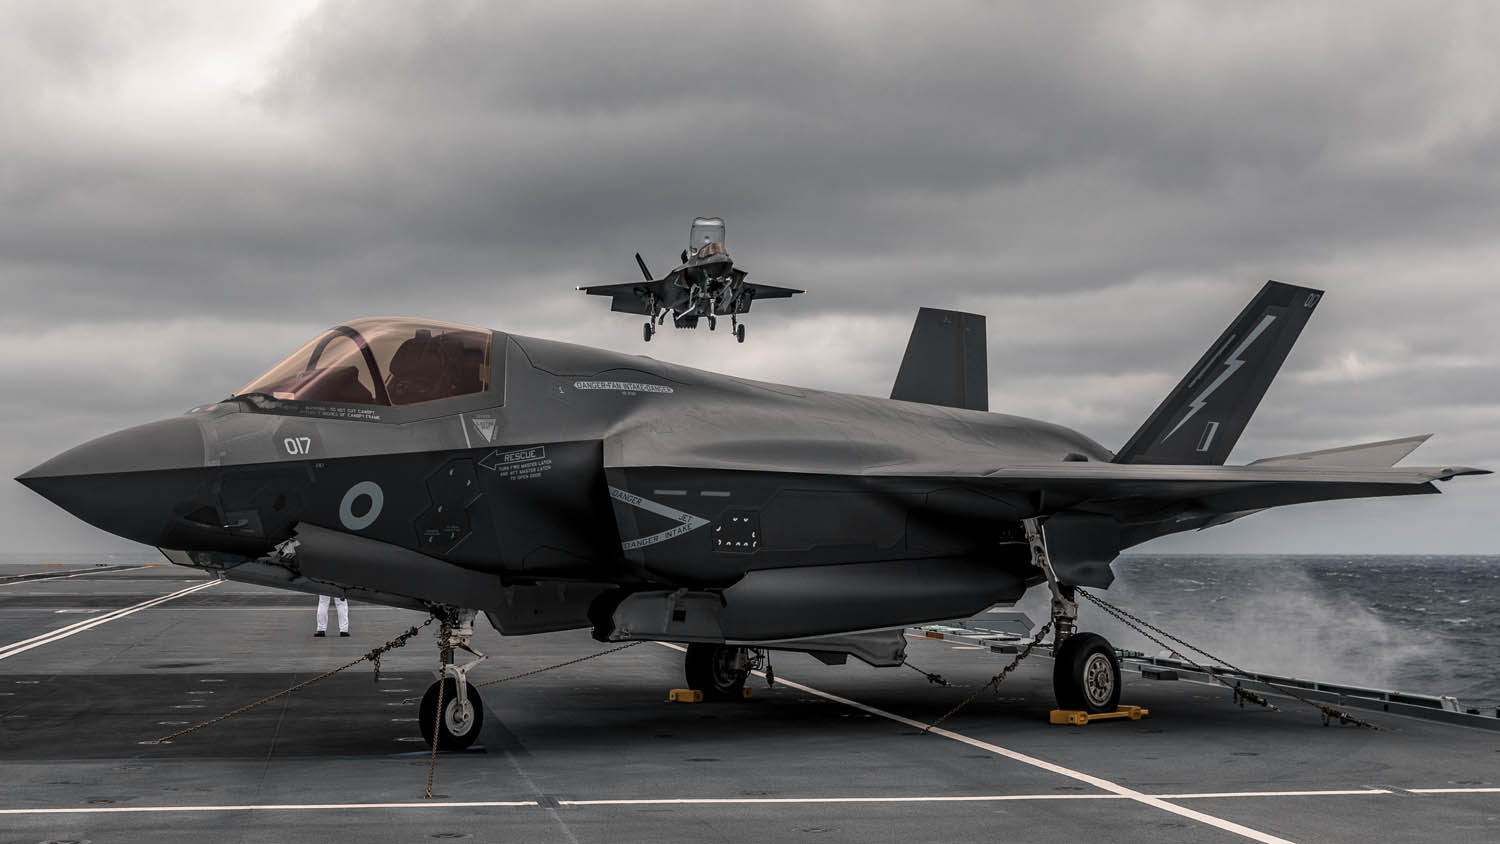 Royal Navy • F-35 Deck Operations • Aboard HMS Queen Elizabeth • 25 Sep 2020